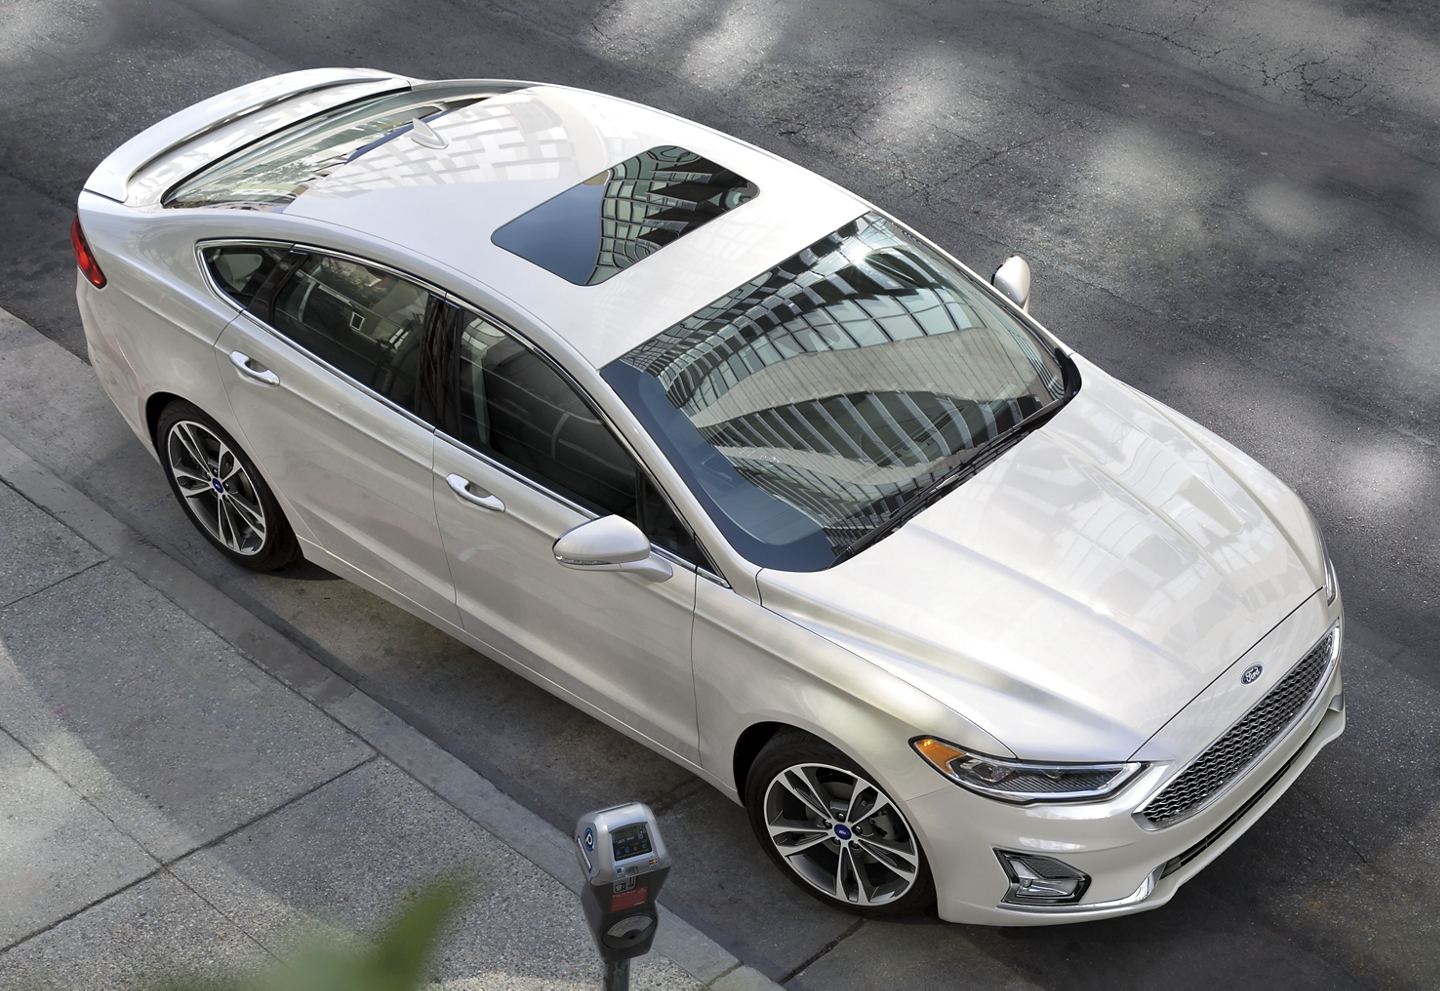 New 2020 Ford Fusion Side